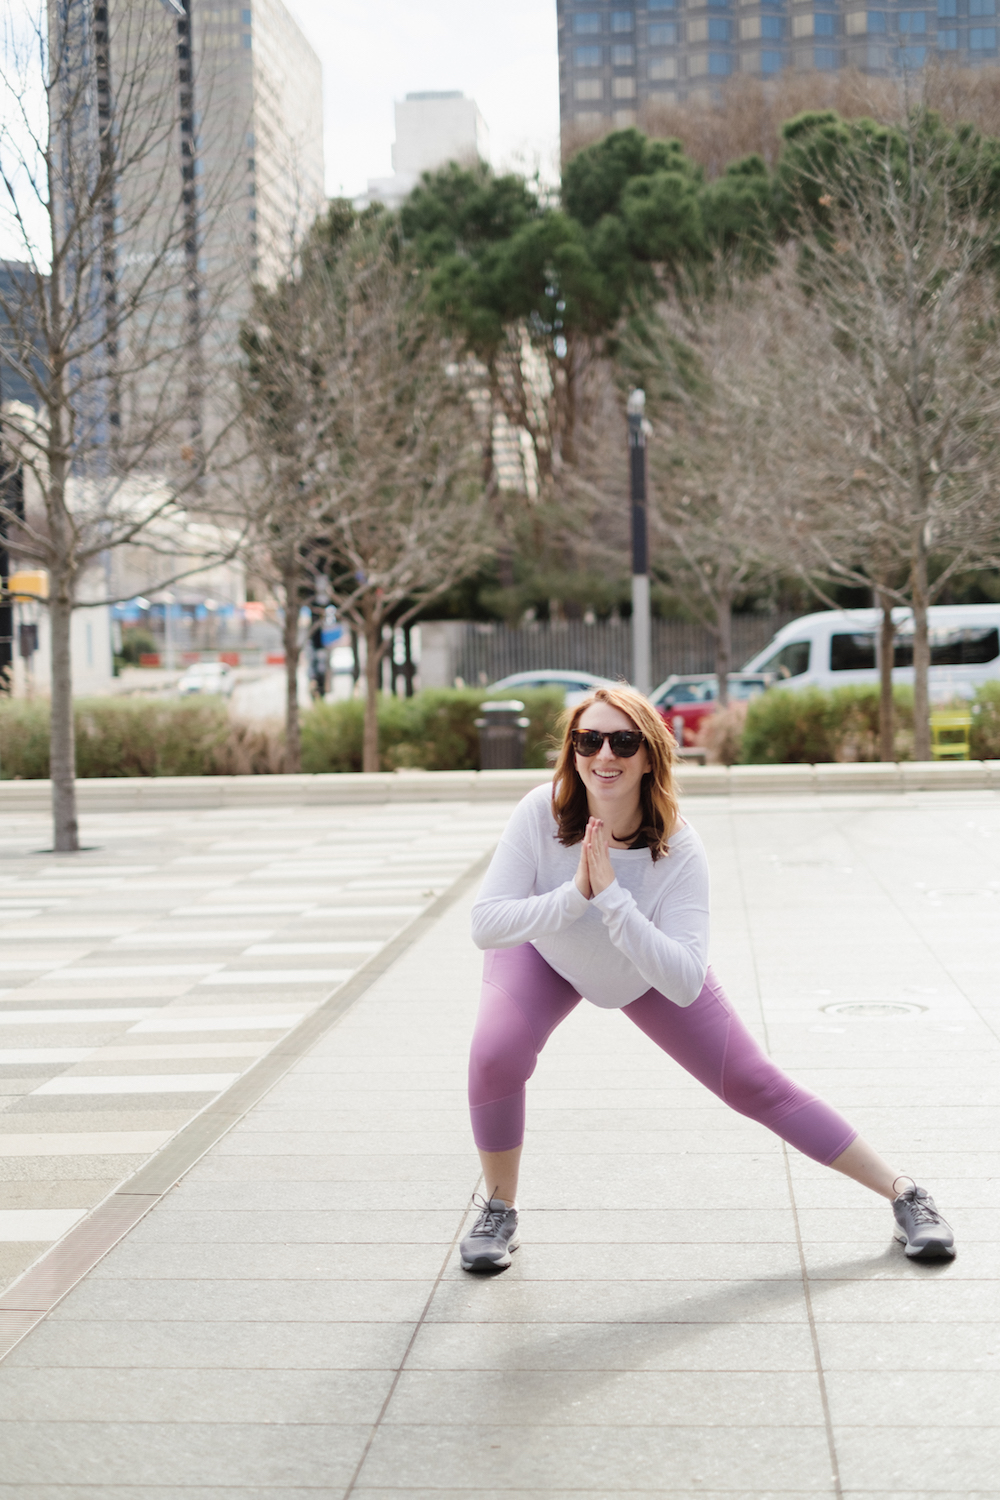 Lateral Lunge Proper Form | Workouts You Can Do While Traveling | Workouts You Can Do On the Road